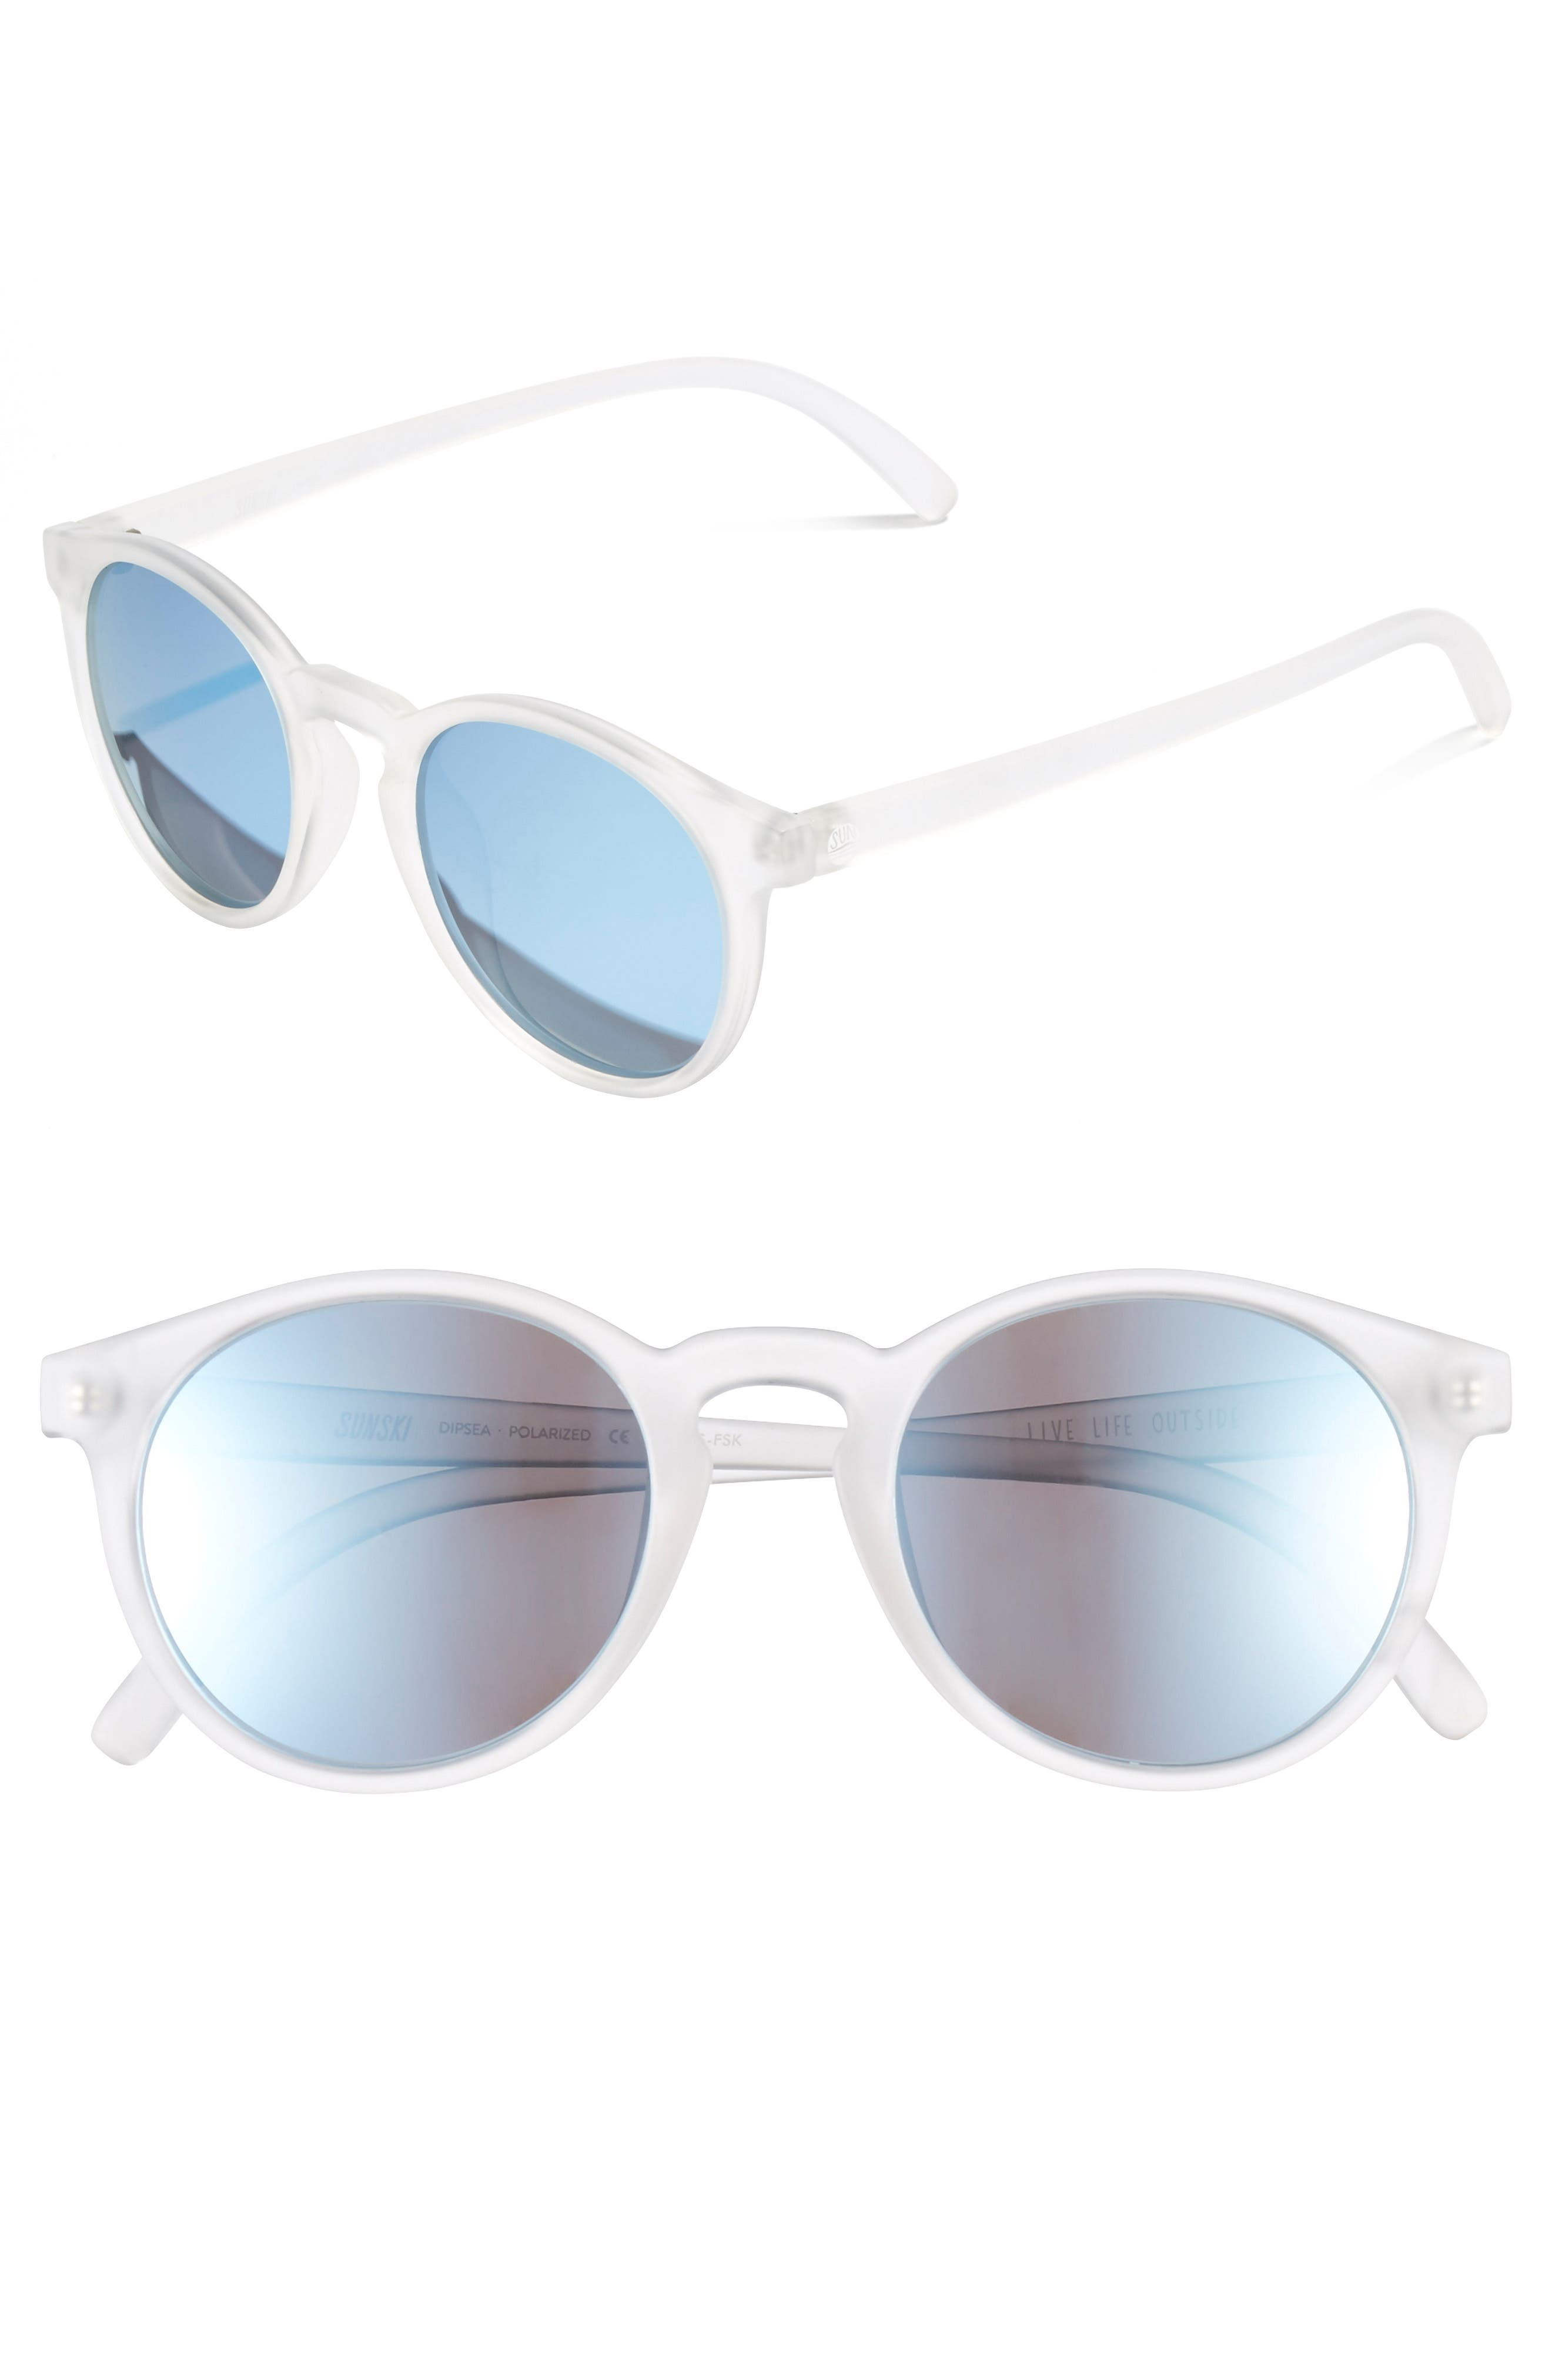 Dipsea 48mm Polarized Sunglasses,                             Alternate thumbnail 2, color,                             FROSTED SKY